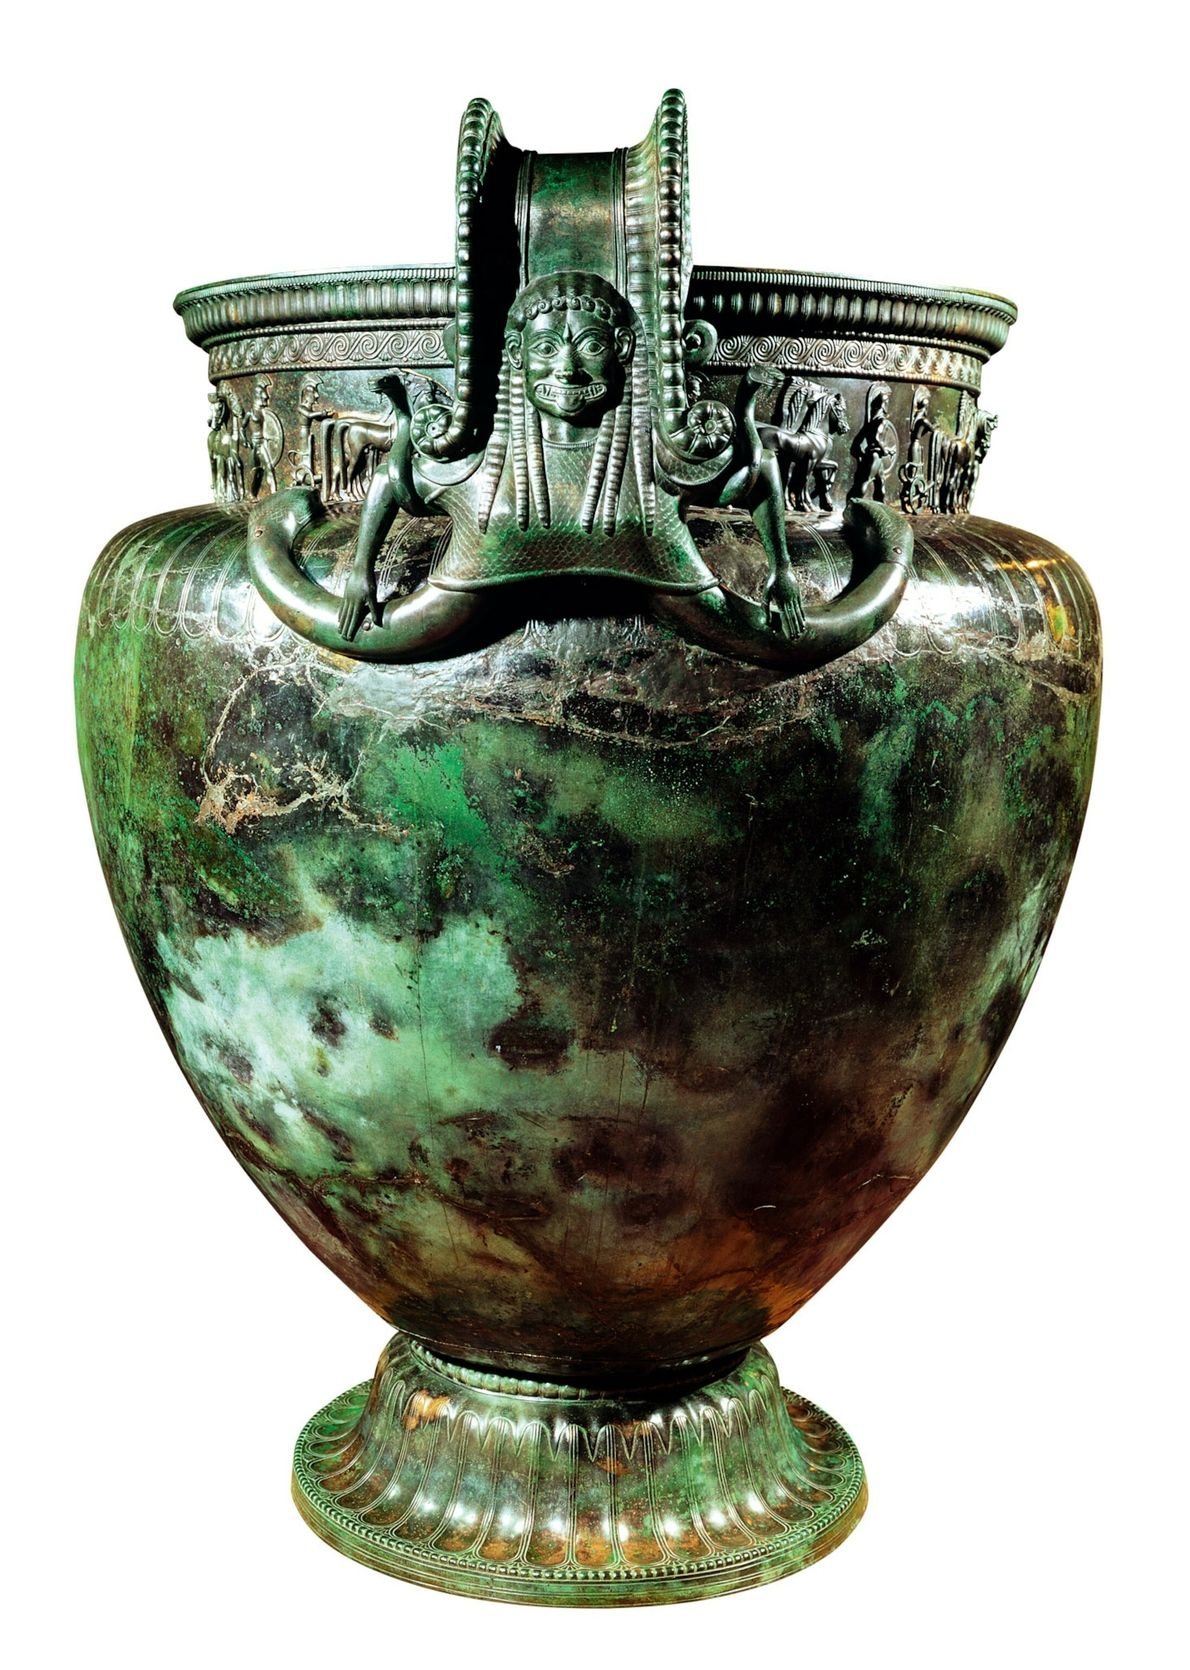 Standing more than five feet tall, this magnificent bronze krater was used for diluting wine with ...